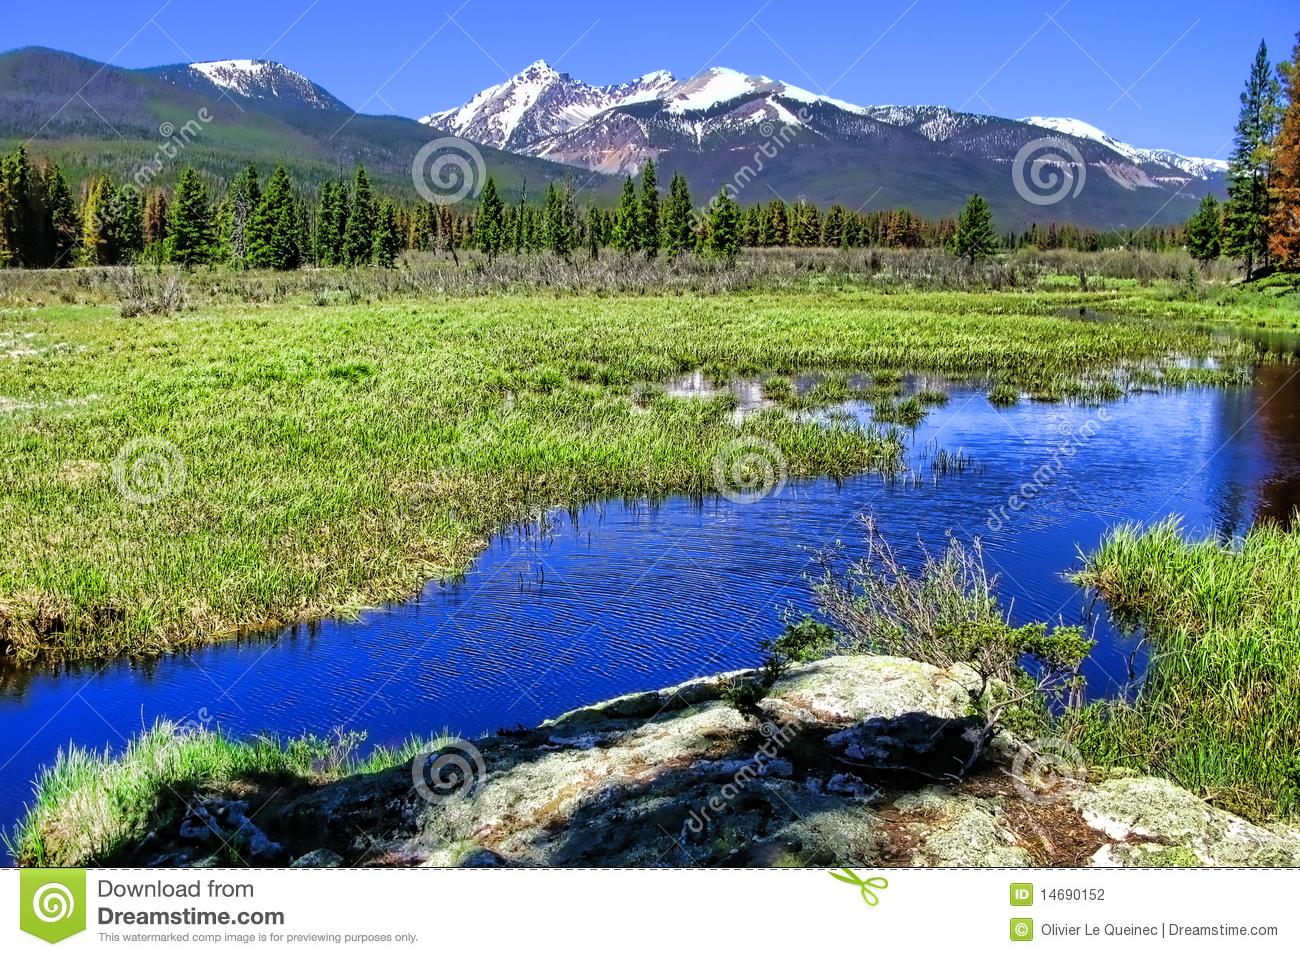 Rocky Mountain Scenic Panorama and River Landscape